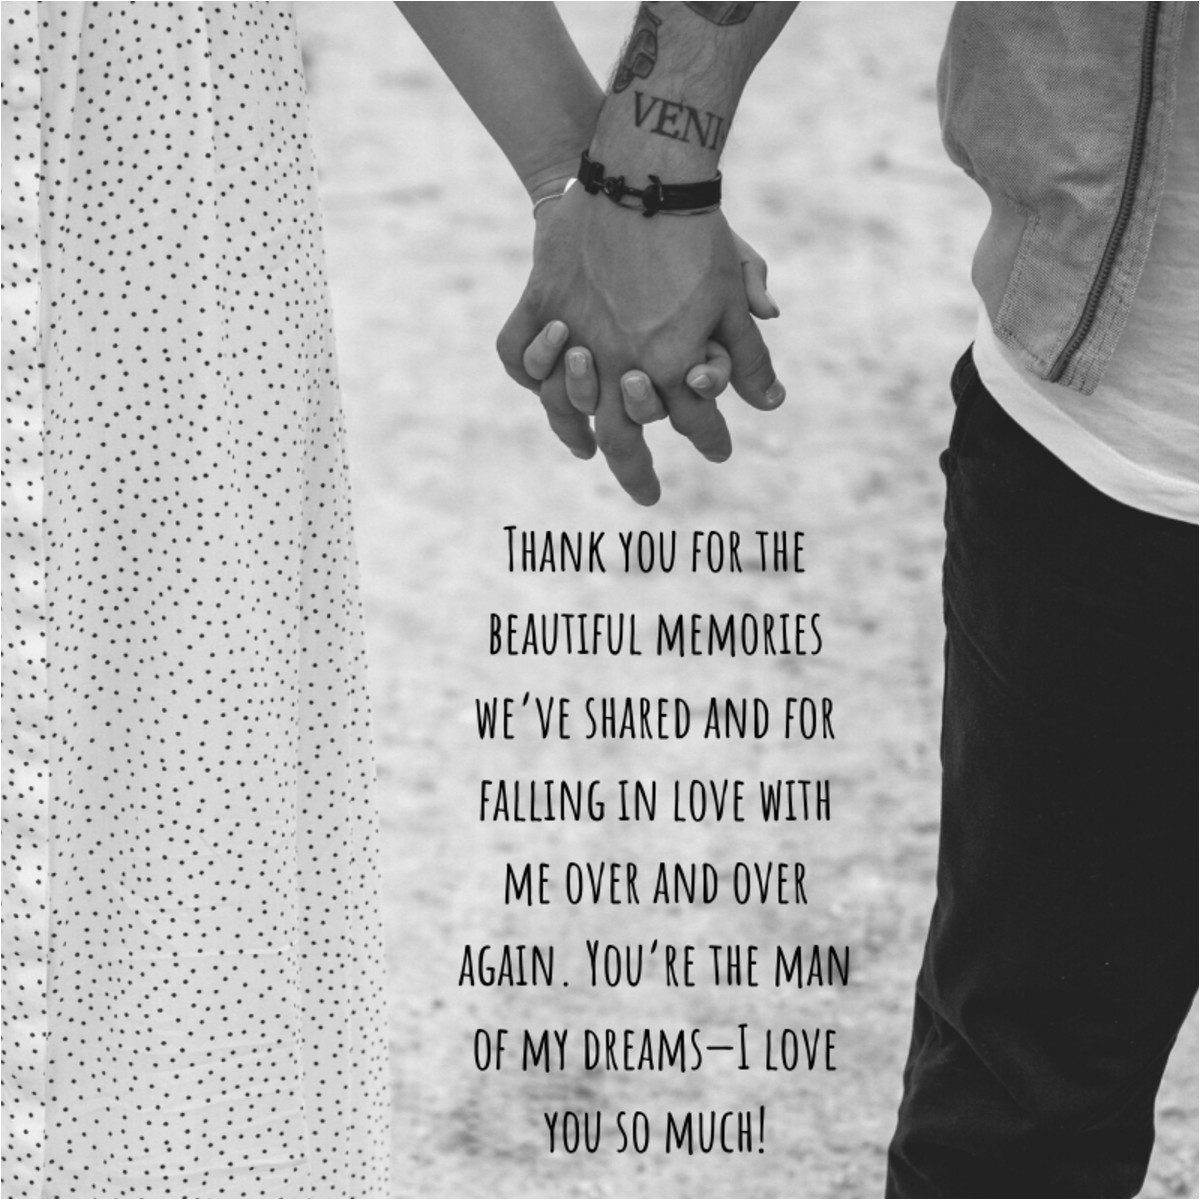 Best Wedding Anniversary Wishes for Your Husband